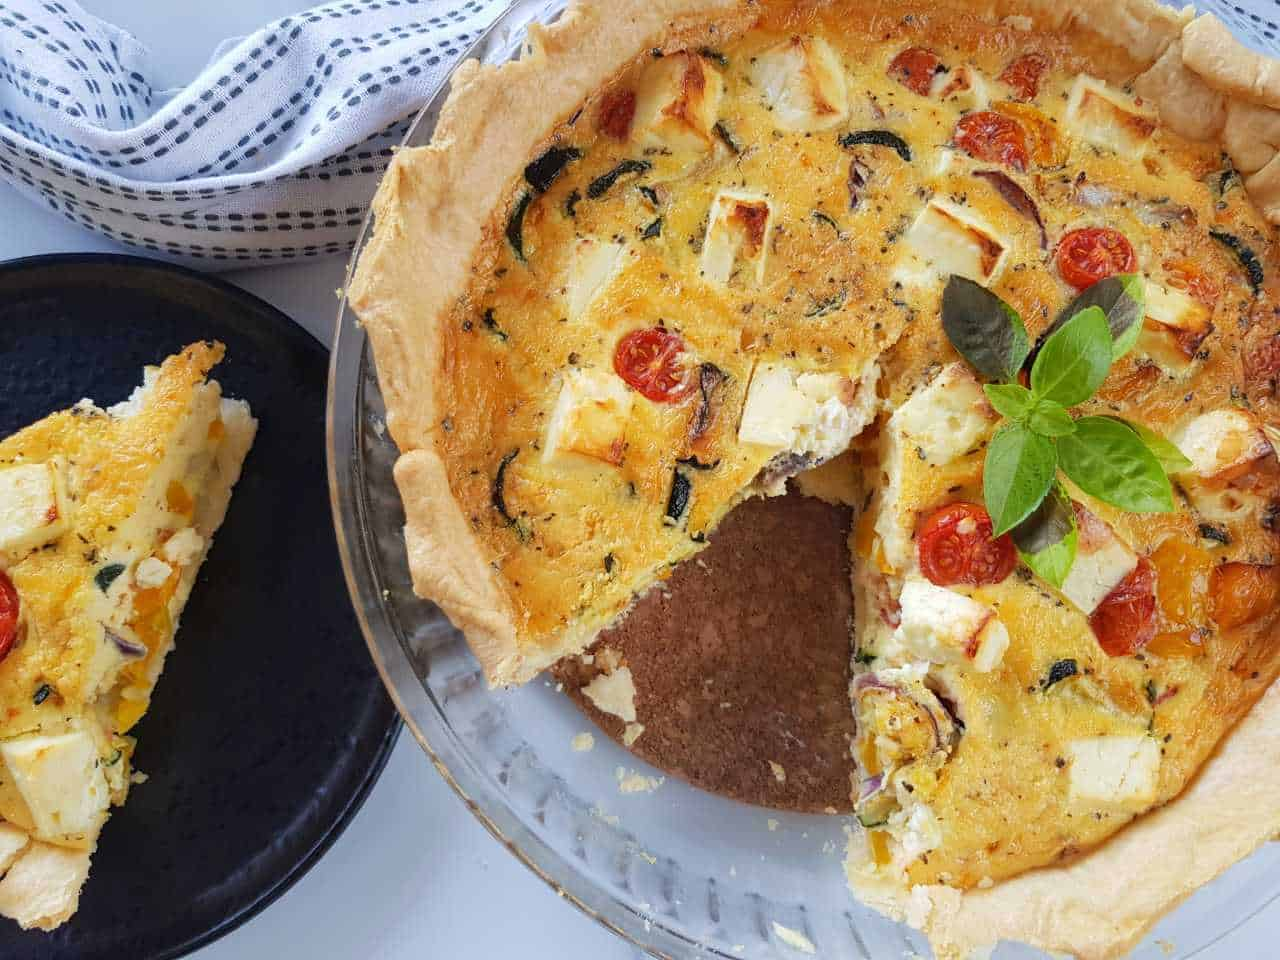 Roasted vegetable quiche with feta on a table, with a slice plated on the side.